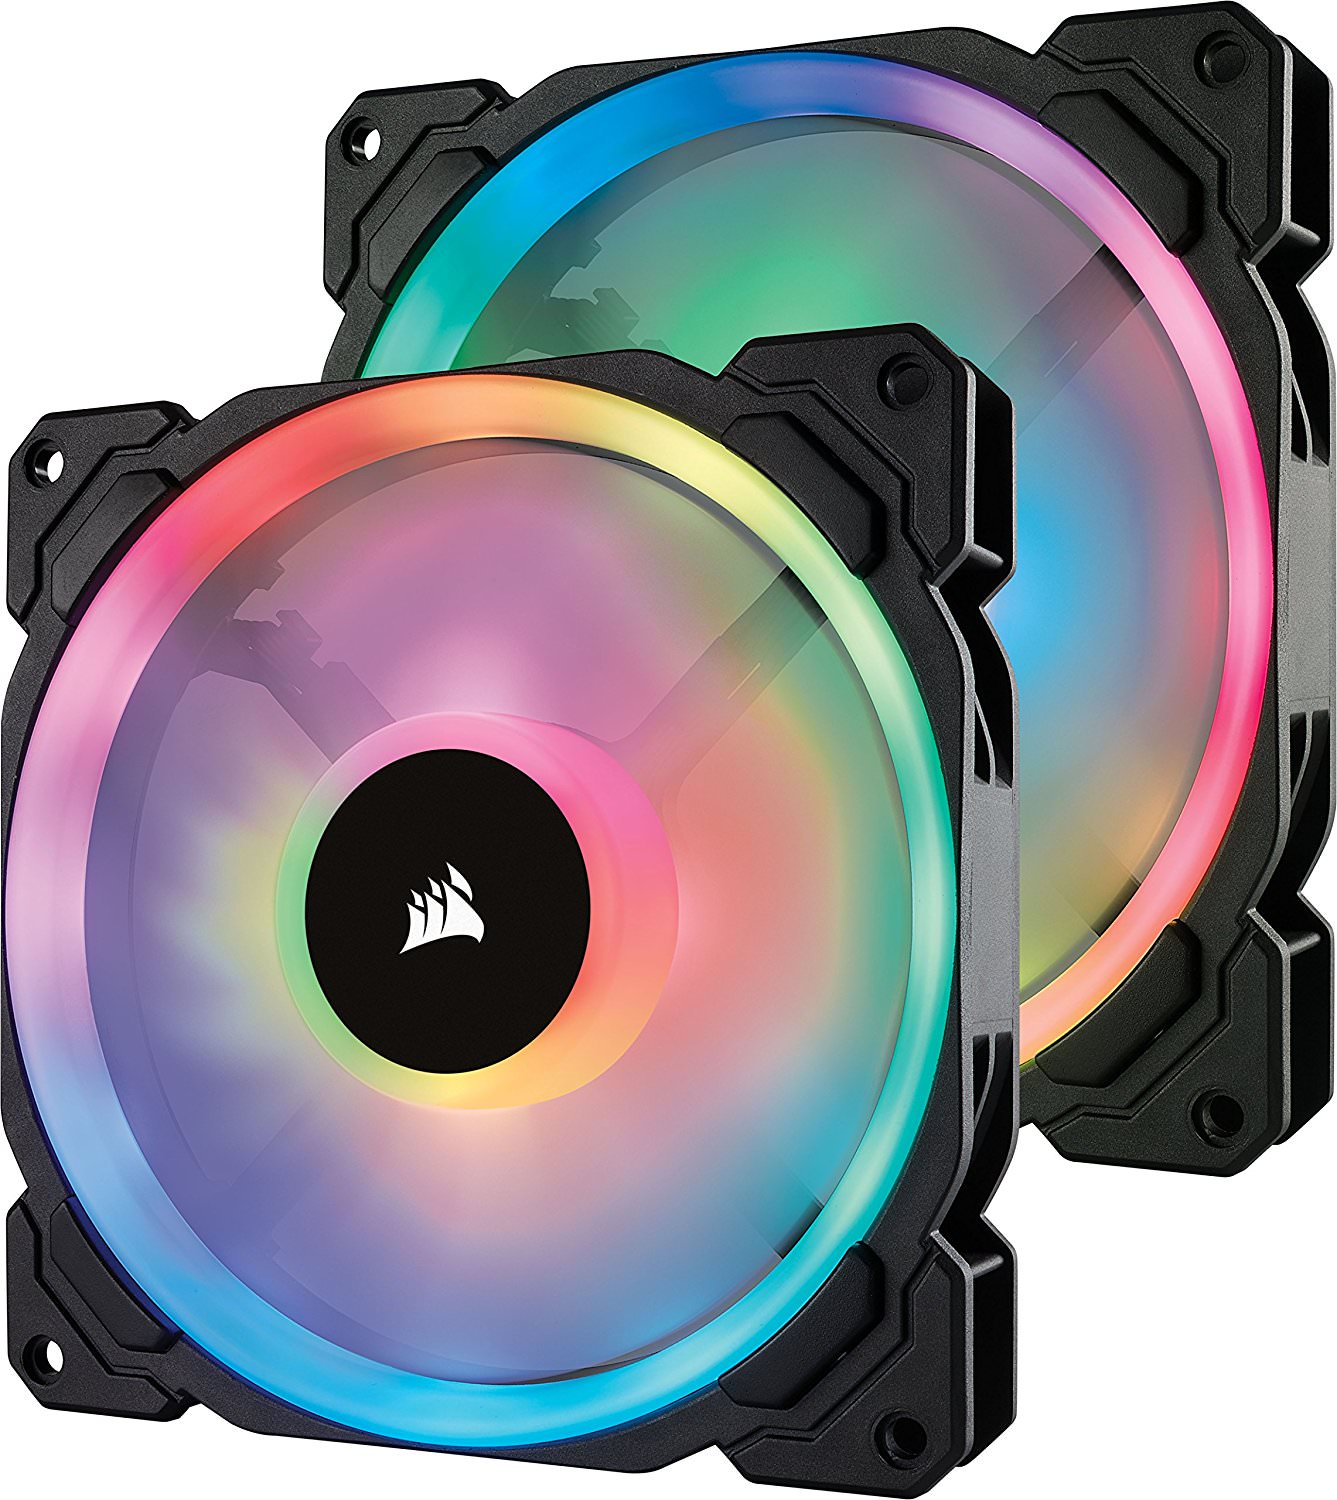 Corsair LL Series LL140 RGB 140mm Dual Light Loop RGB LED PWM Fan 2 Fan Pack with Lighting Node Pro - CO-9050074-WW